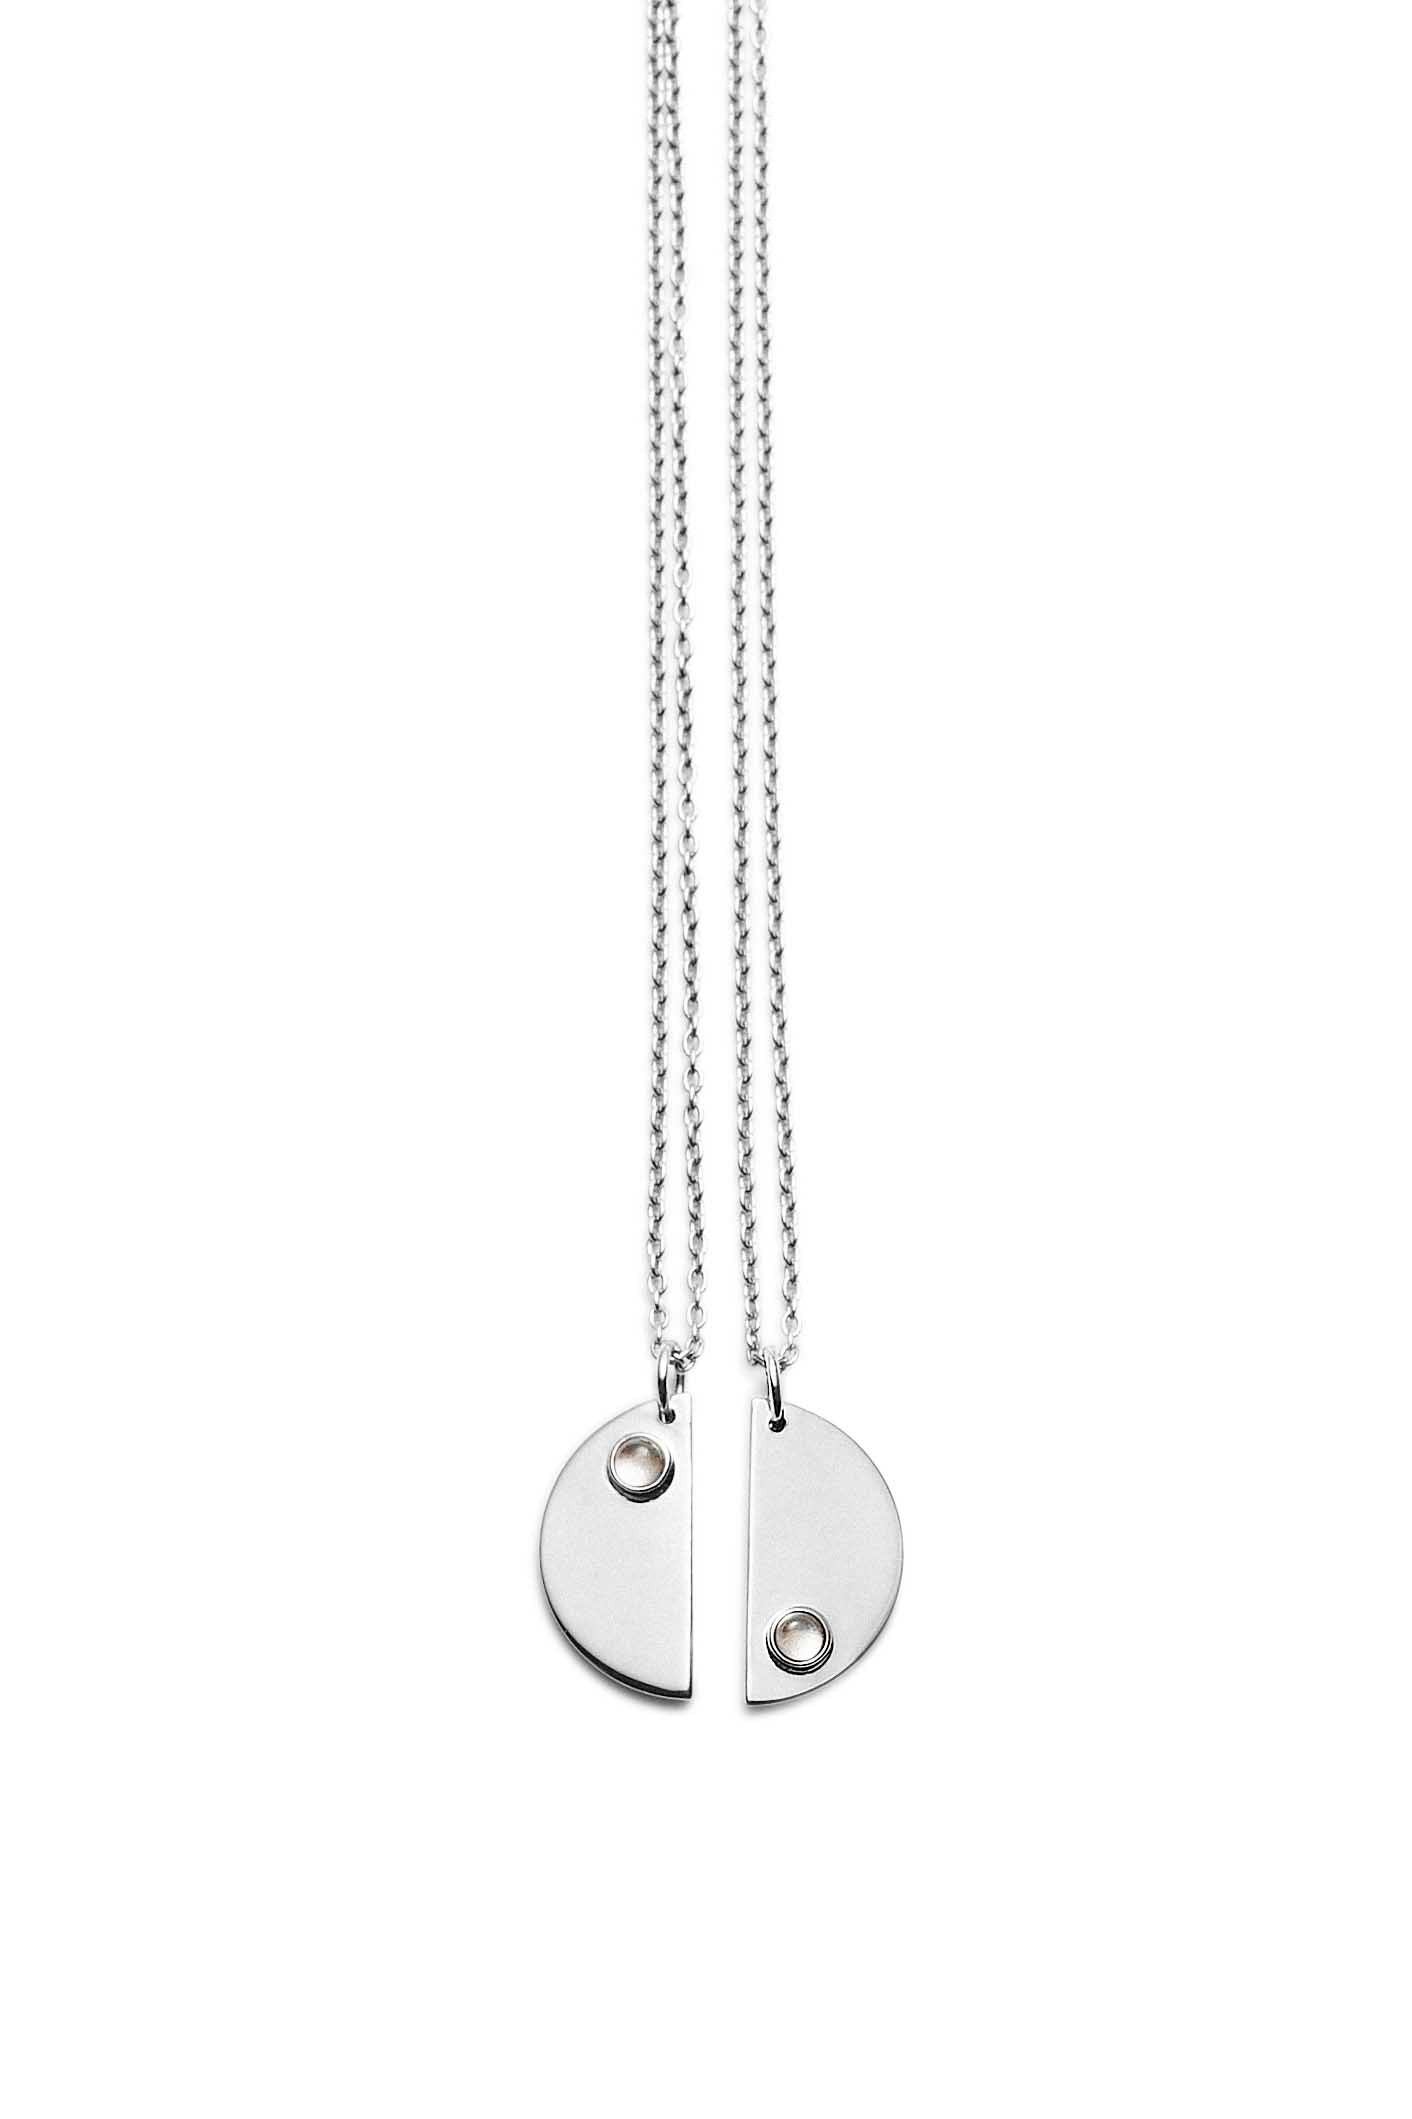 Double Moon Necklaces · Silver - Trine Tuxen Jewelry